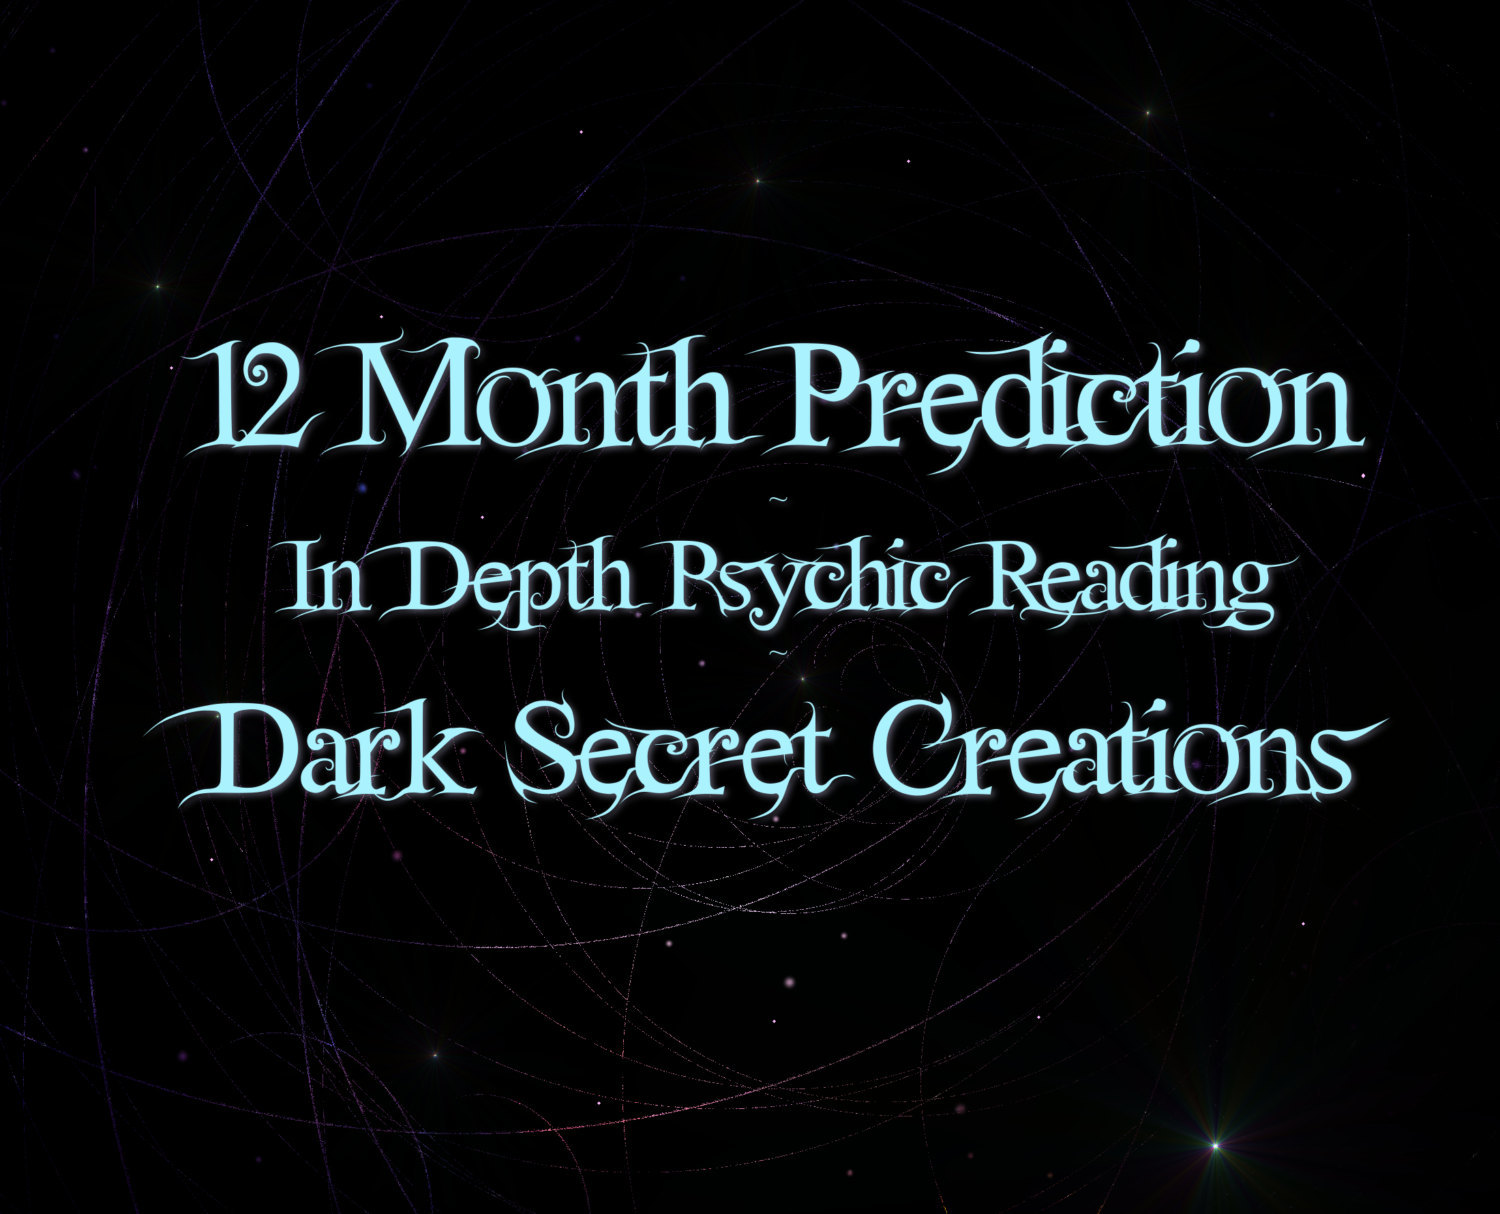 12  Month Prediction, In Depth Psychic Reading, One Year Reading Sent Via PDF